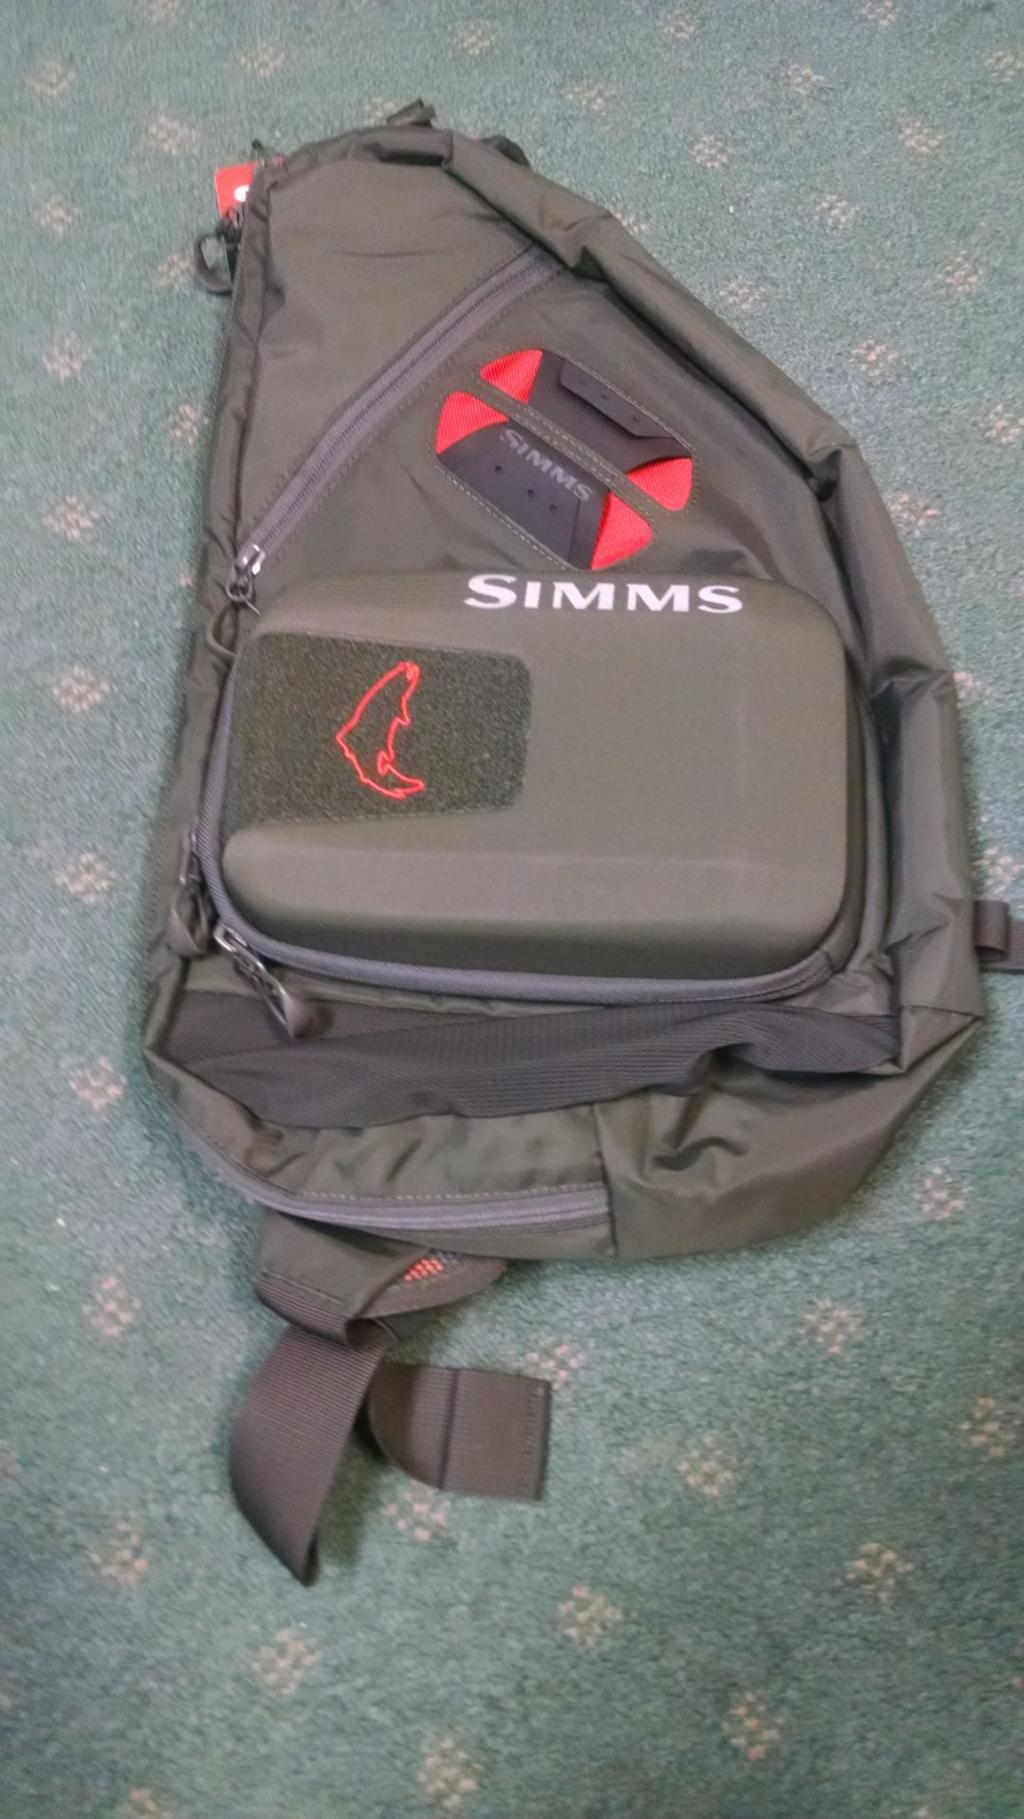 Simms Headwaters Sling Pack A Cinch To Use Sports Rapidcityjournal Com